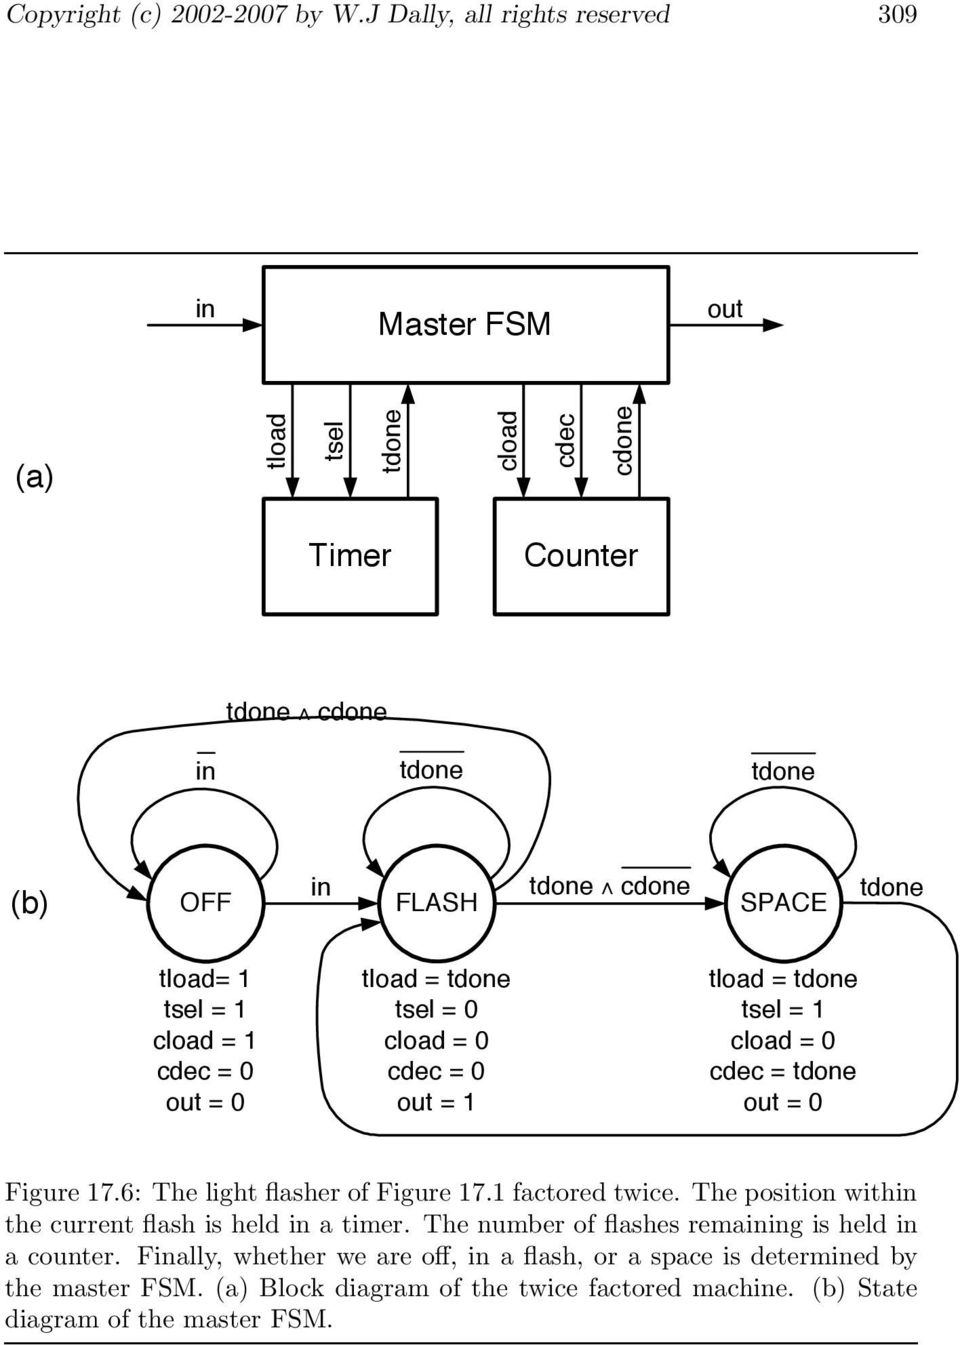 Factoring Finite State Machines Pdf Block Diagram From Space Tload 1 Tel Cload Cdec 0 Out